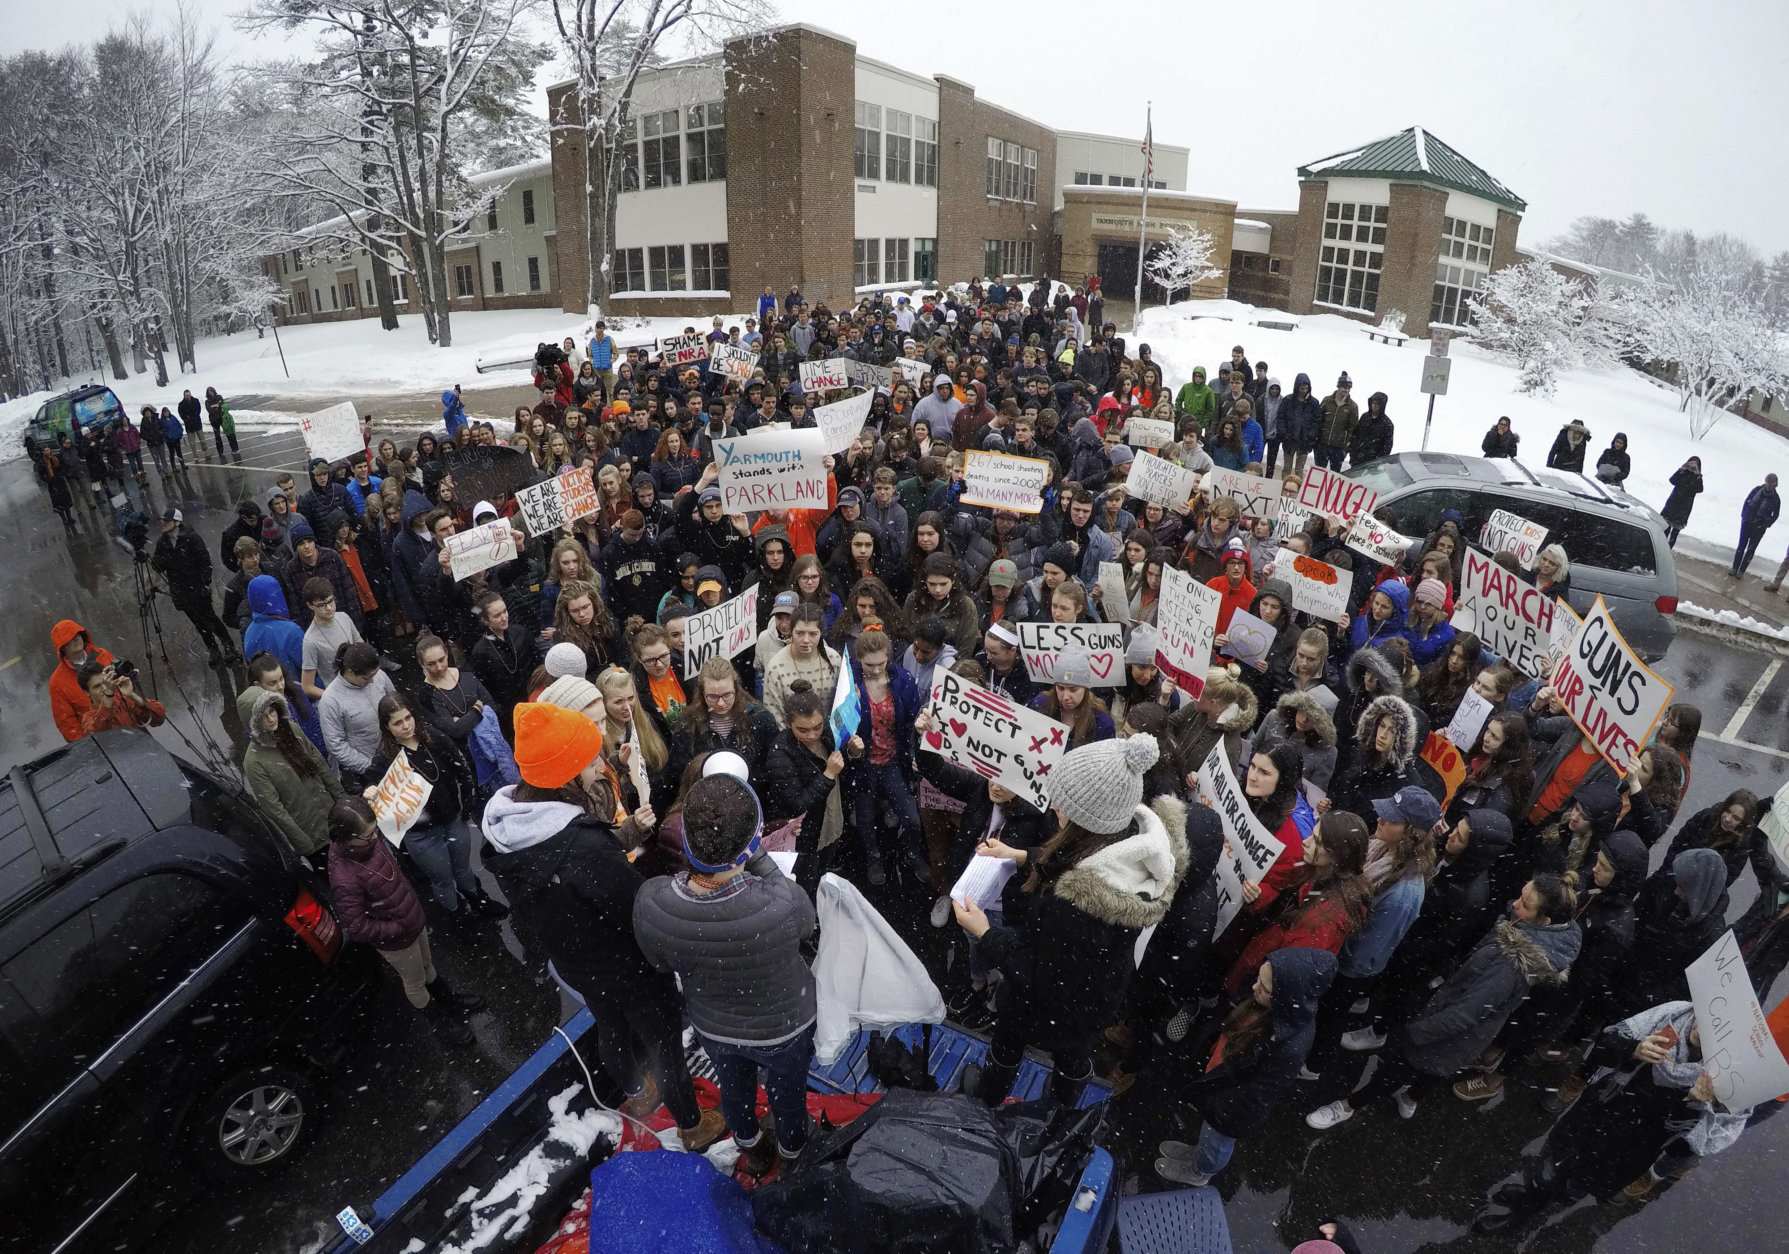 Students at Yarmouth High School participate in a walkout to protest gun violence, Wednesday, March 14, 2018, in Yarmouth, Maine. Leaders of the rally address the crowd from the back of a pick-up truck in front of the school. Yarmouth is one of the few schools in Maine that did not cancel school on Wednesday as the state digs out from the third major winter storm in two weeks. (AP Photo/Robert F. Bukaty)